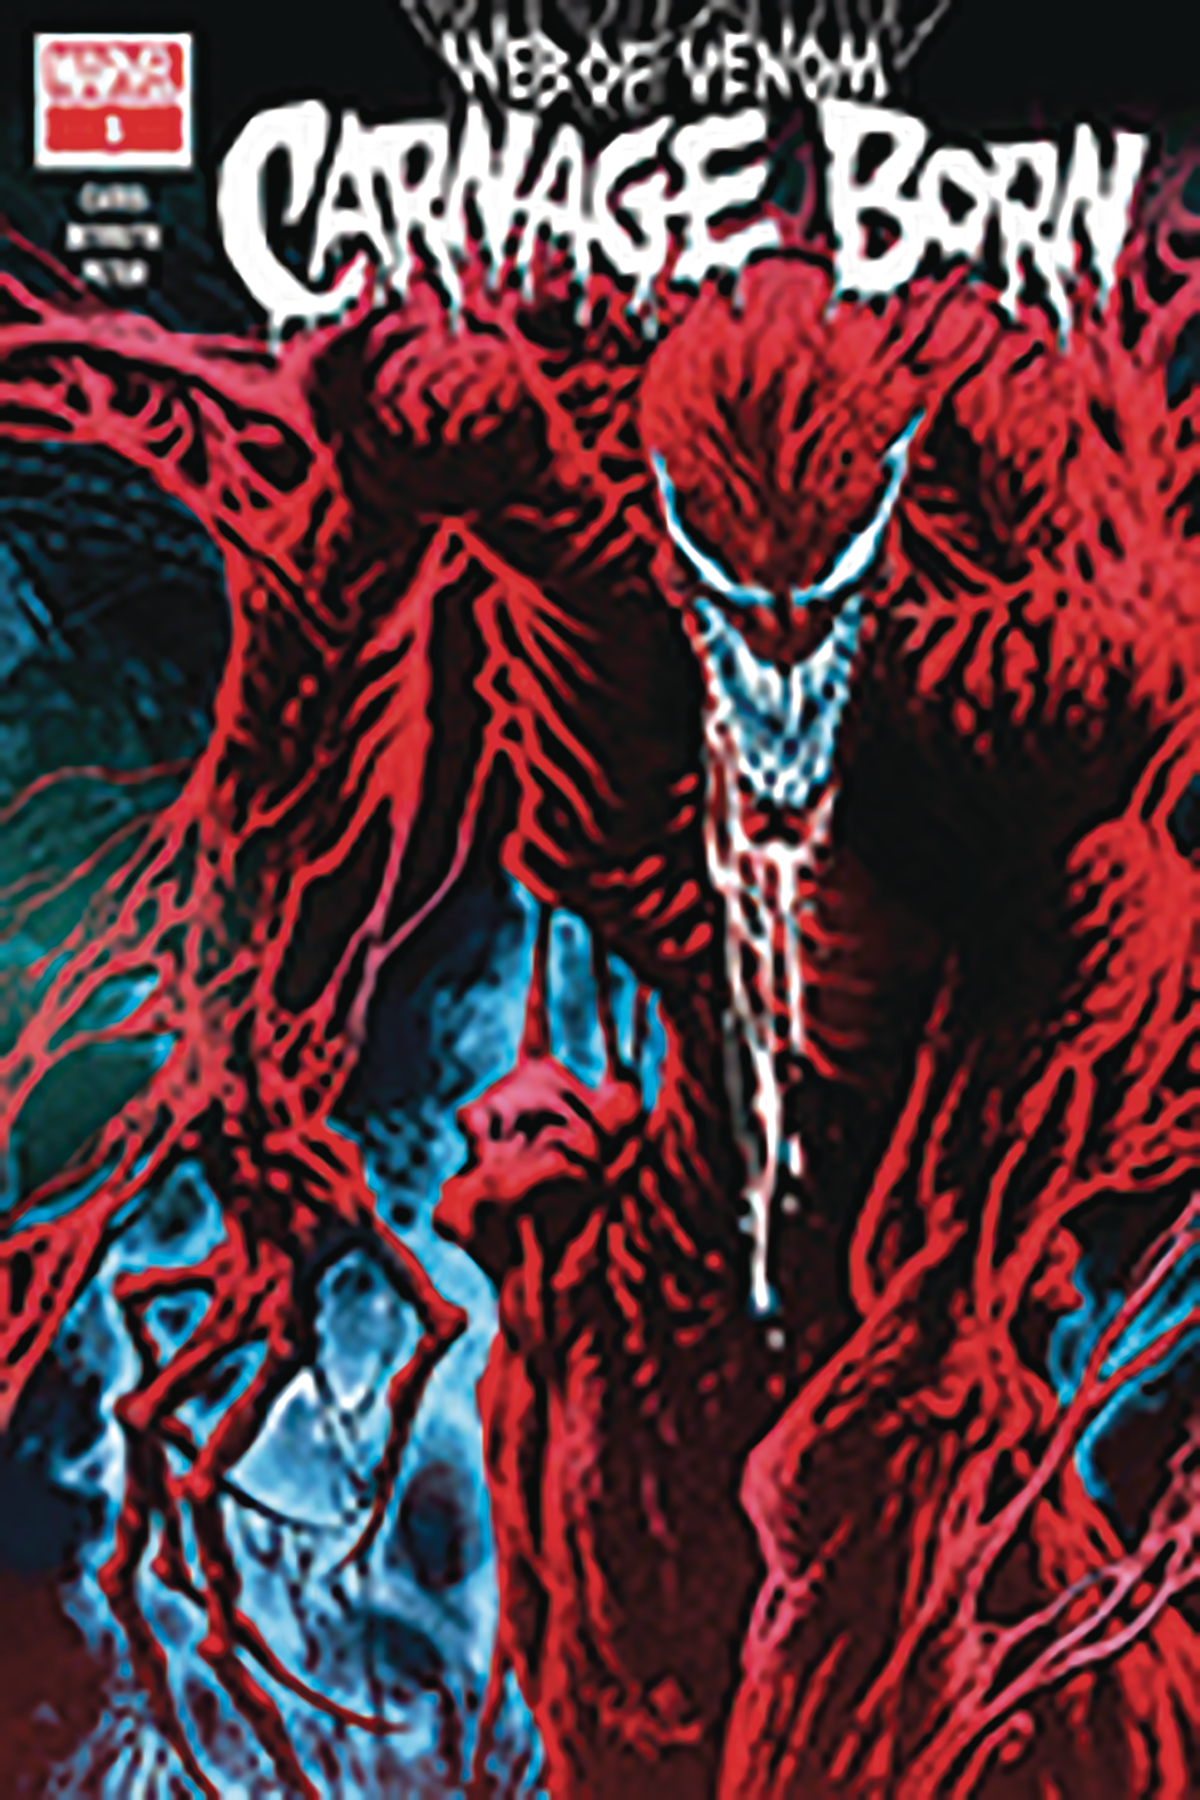 DF WEB OF VENOM CARNAGE #1 SGN CATES